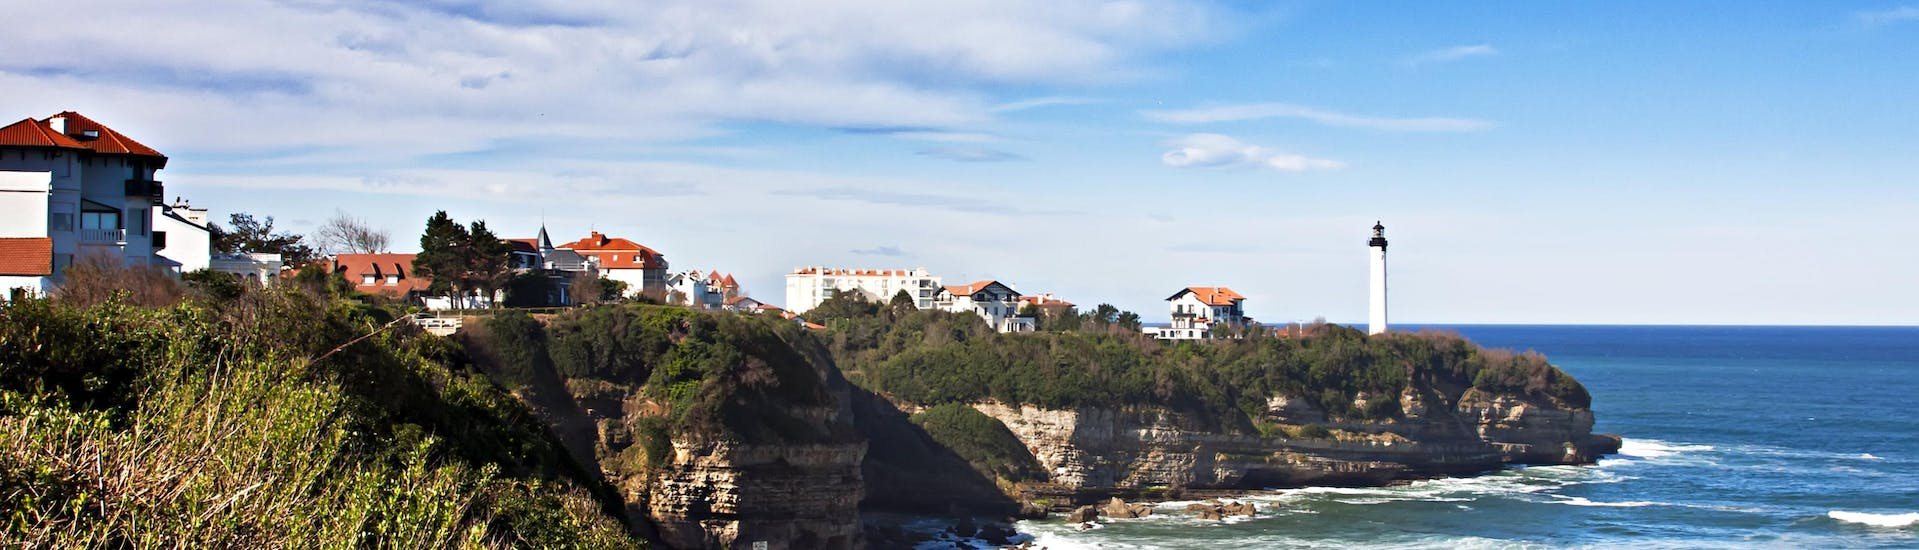 View of one of the many beaches of Anglet in the French Basque Country where surf enthusiasts can take surfing lessons.